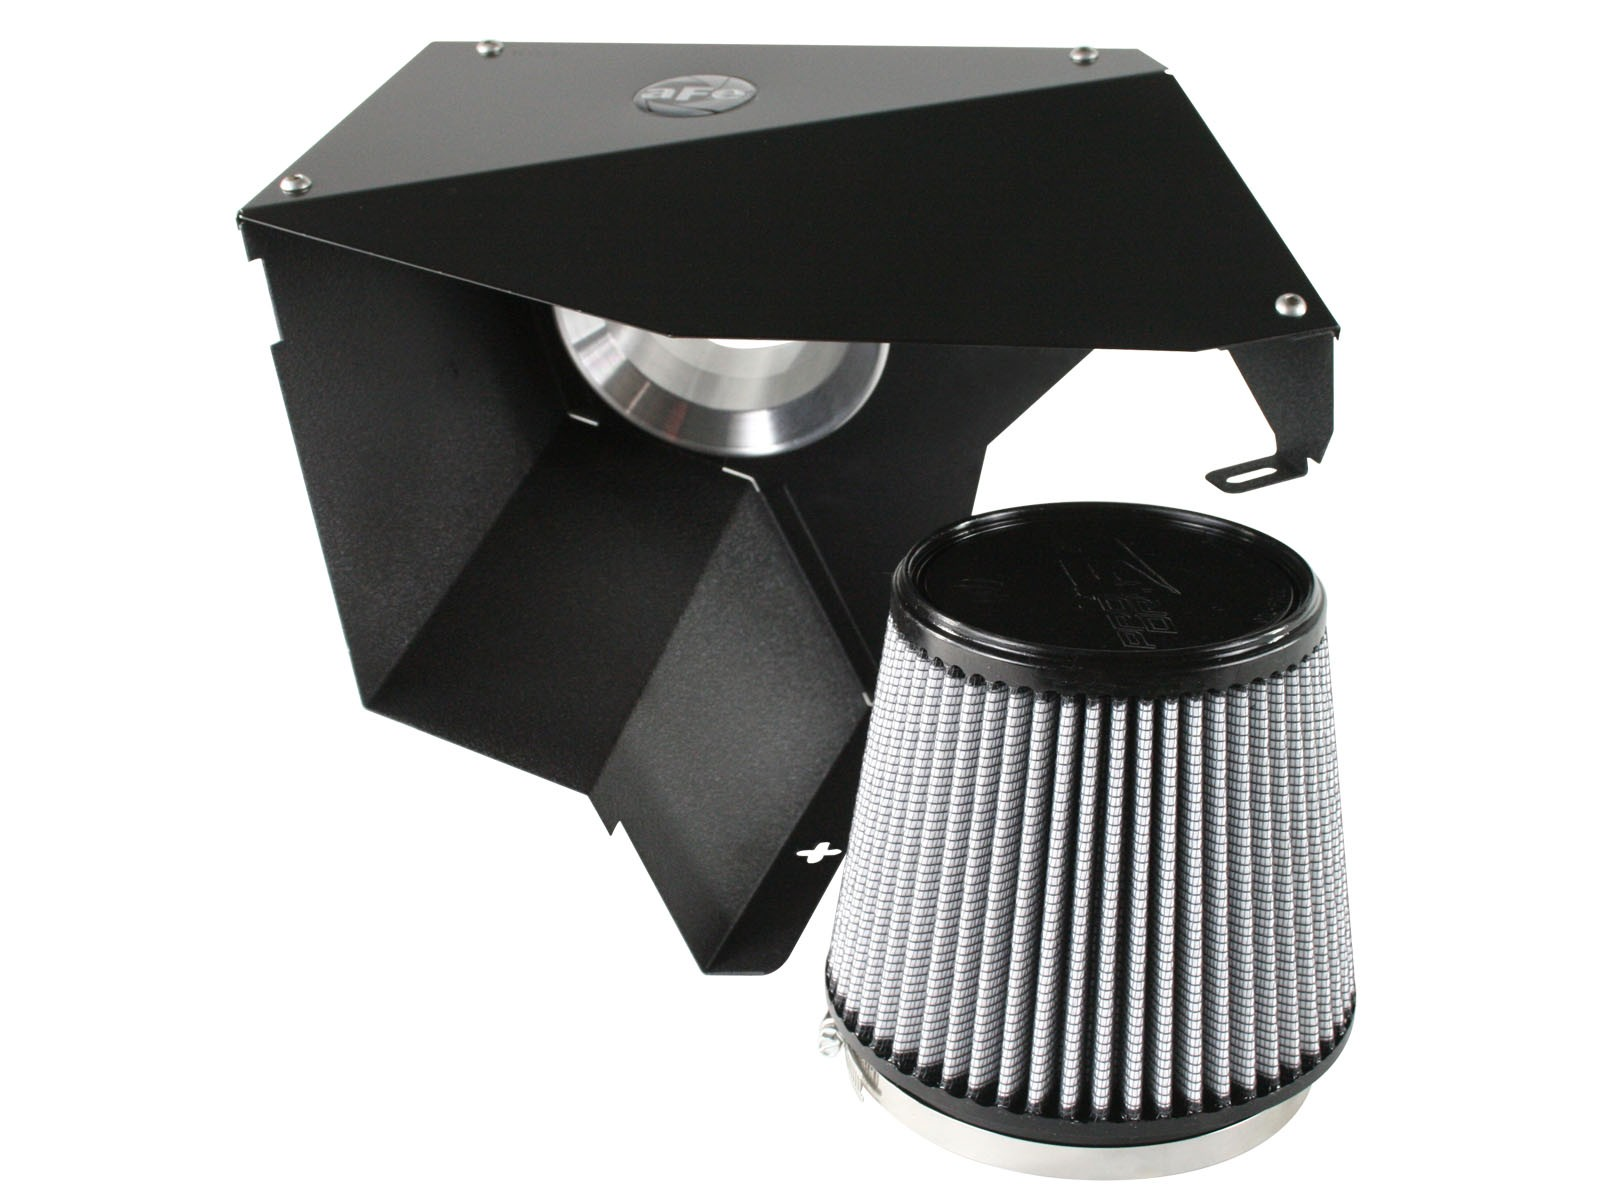 aFe POWER 51-11521 Magnum FORCE Stage-1 Pro DRY S Cold Air Intake System